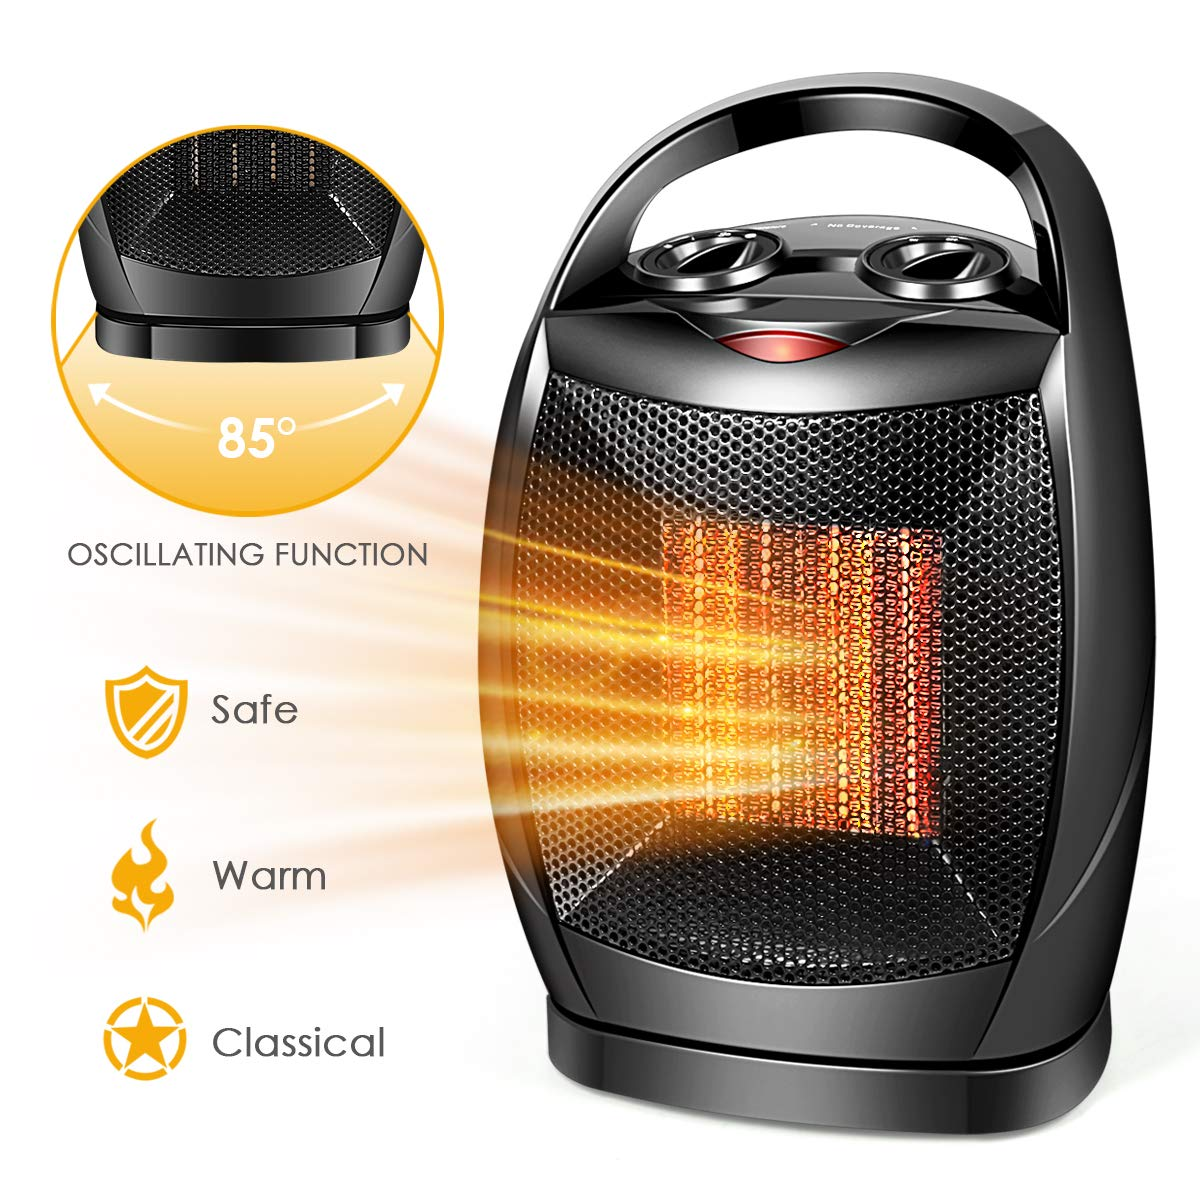 Ceramic Space Heater, 750W 1500W Portable Desk Small Quiet Fast Heating Fan, Overheat Tip-Over Protection, Energy Efficient Space Heater for Office Desktop and Home